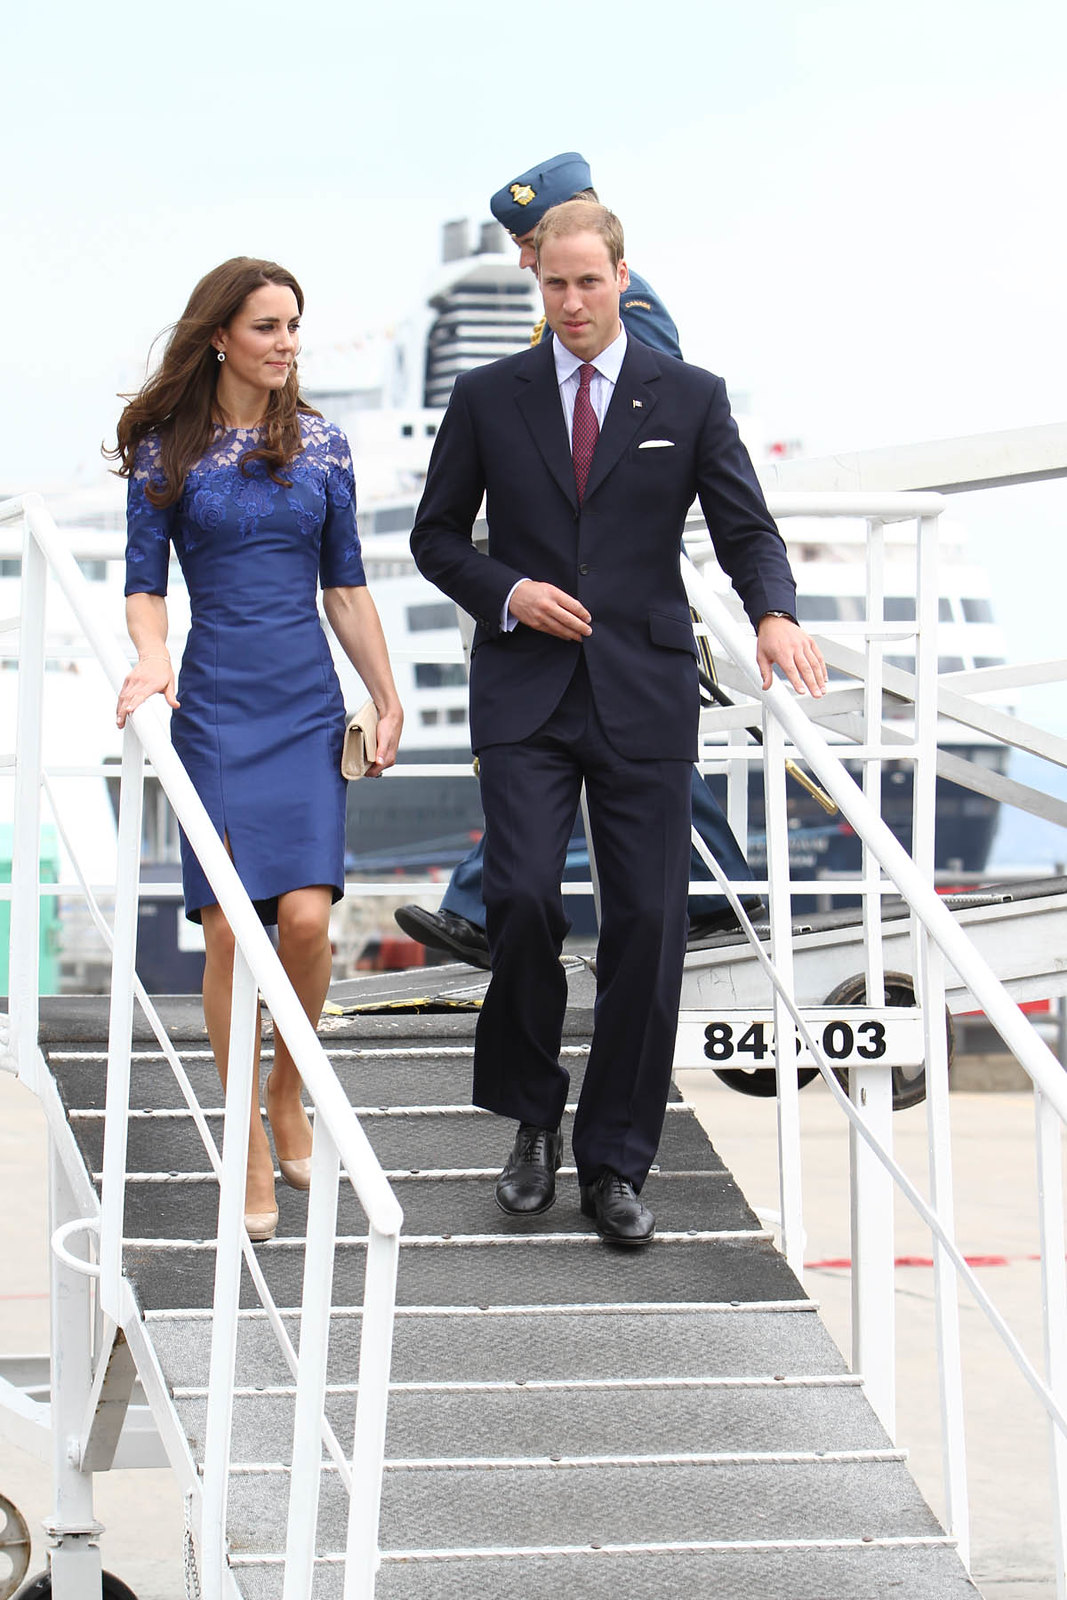 The Duchess of Cambridge wore blue erdem dress in Quebec city during Royal tour of canada in 2011